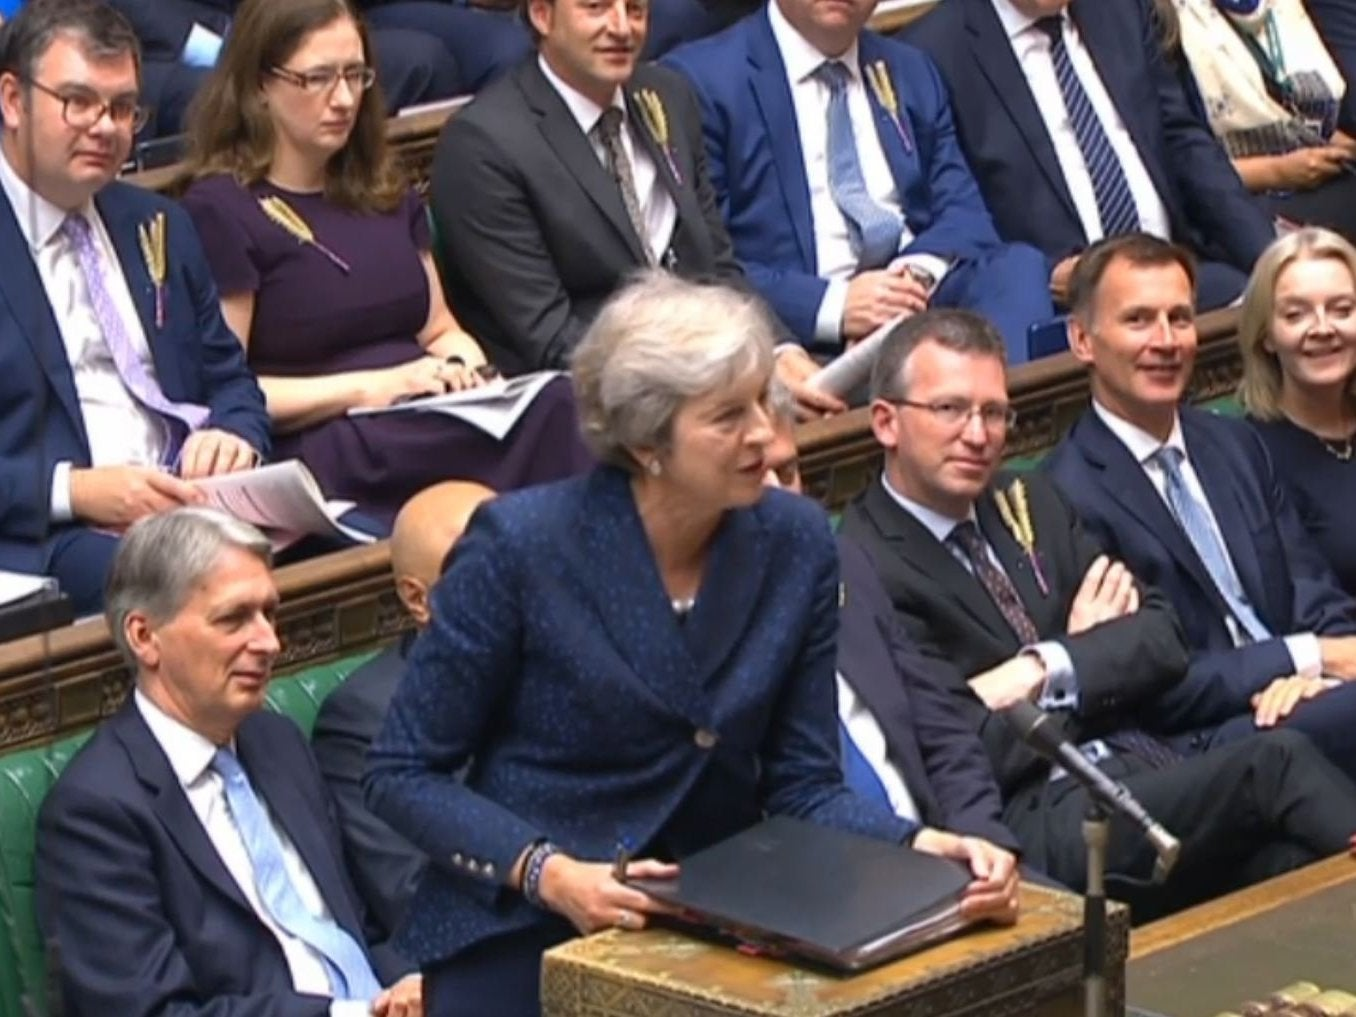 MPs must not bow to Theresa May's pressure on this Brexit proposal for fear of no deal – there are other options